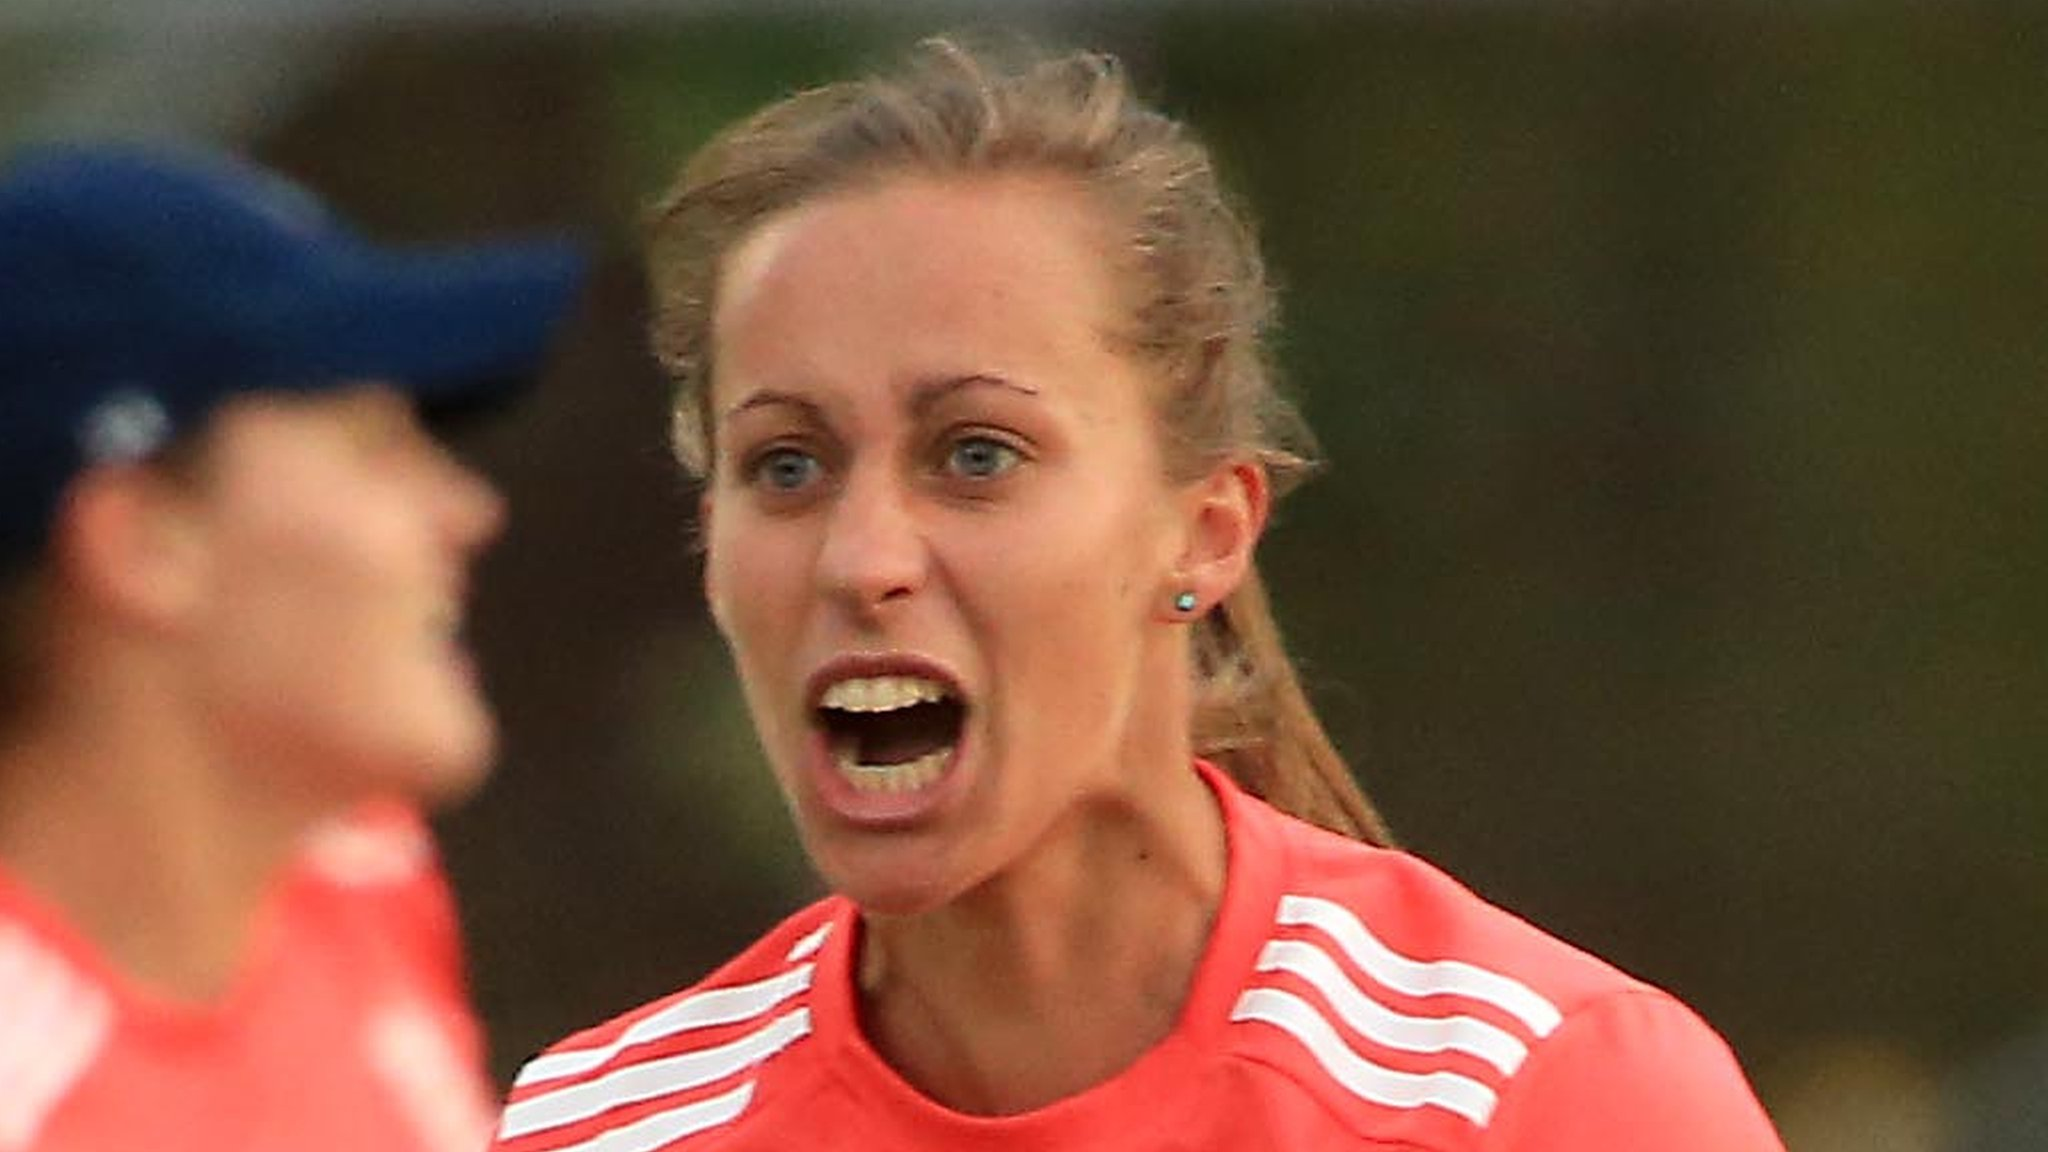 England seek World T20 boost in tri-series as Farrant returns